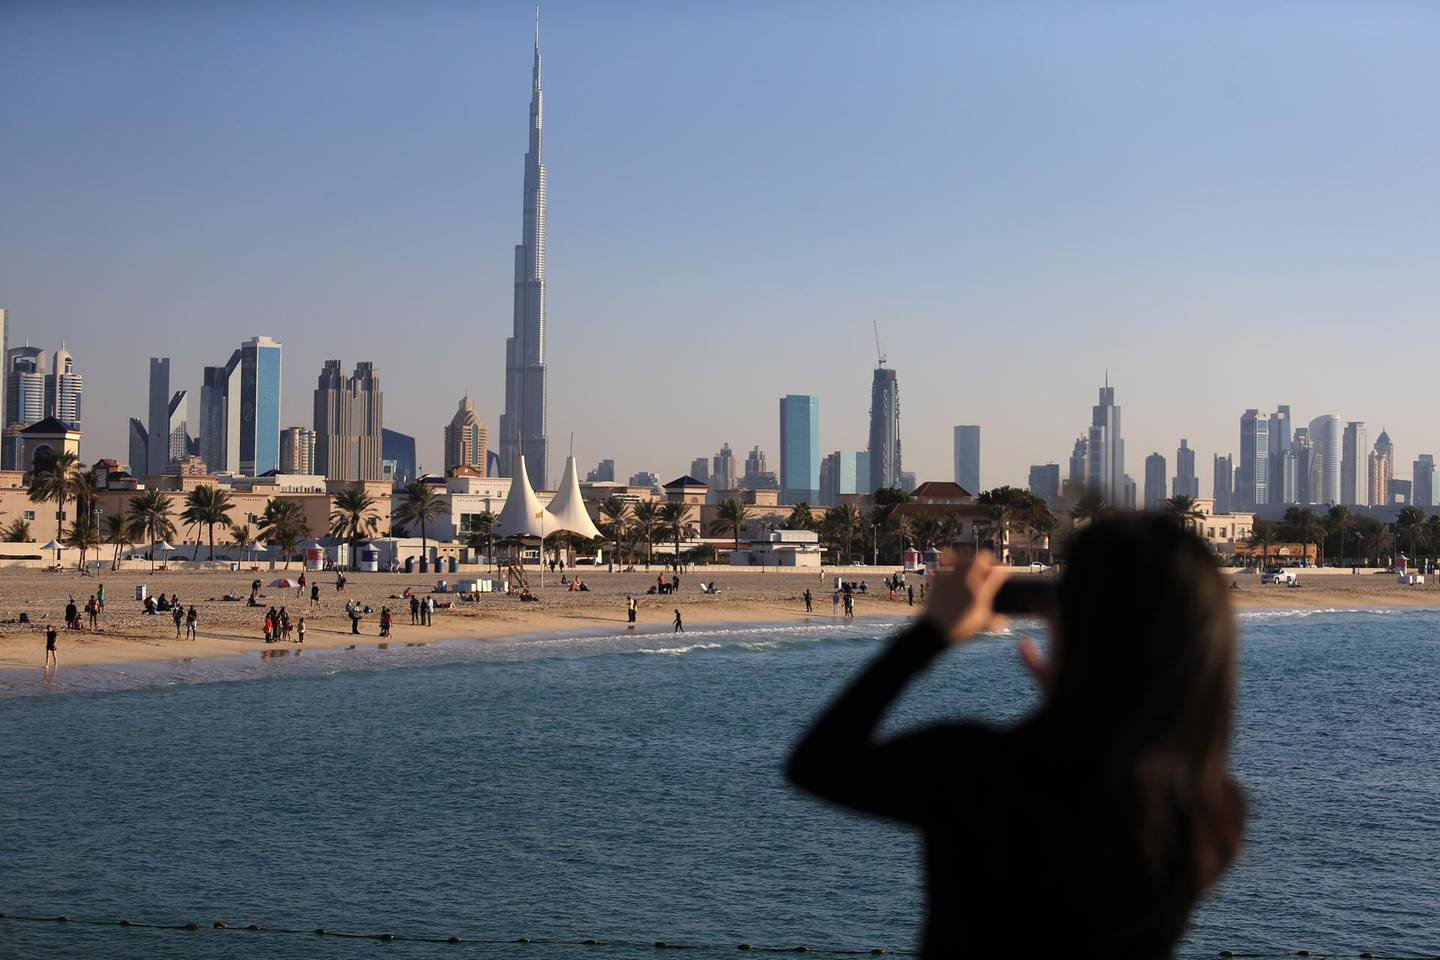 DUBAI, UAE. January 4, 2014 -  A tourist takes a photo of the skyline and the shores of Jumeirah Open Beach in Dubai, January 4, 2014.  (Photo by: Sarah Dea/The National, Story by: STANDALONE, News)